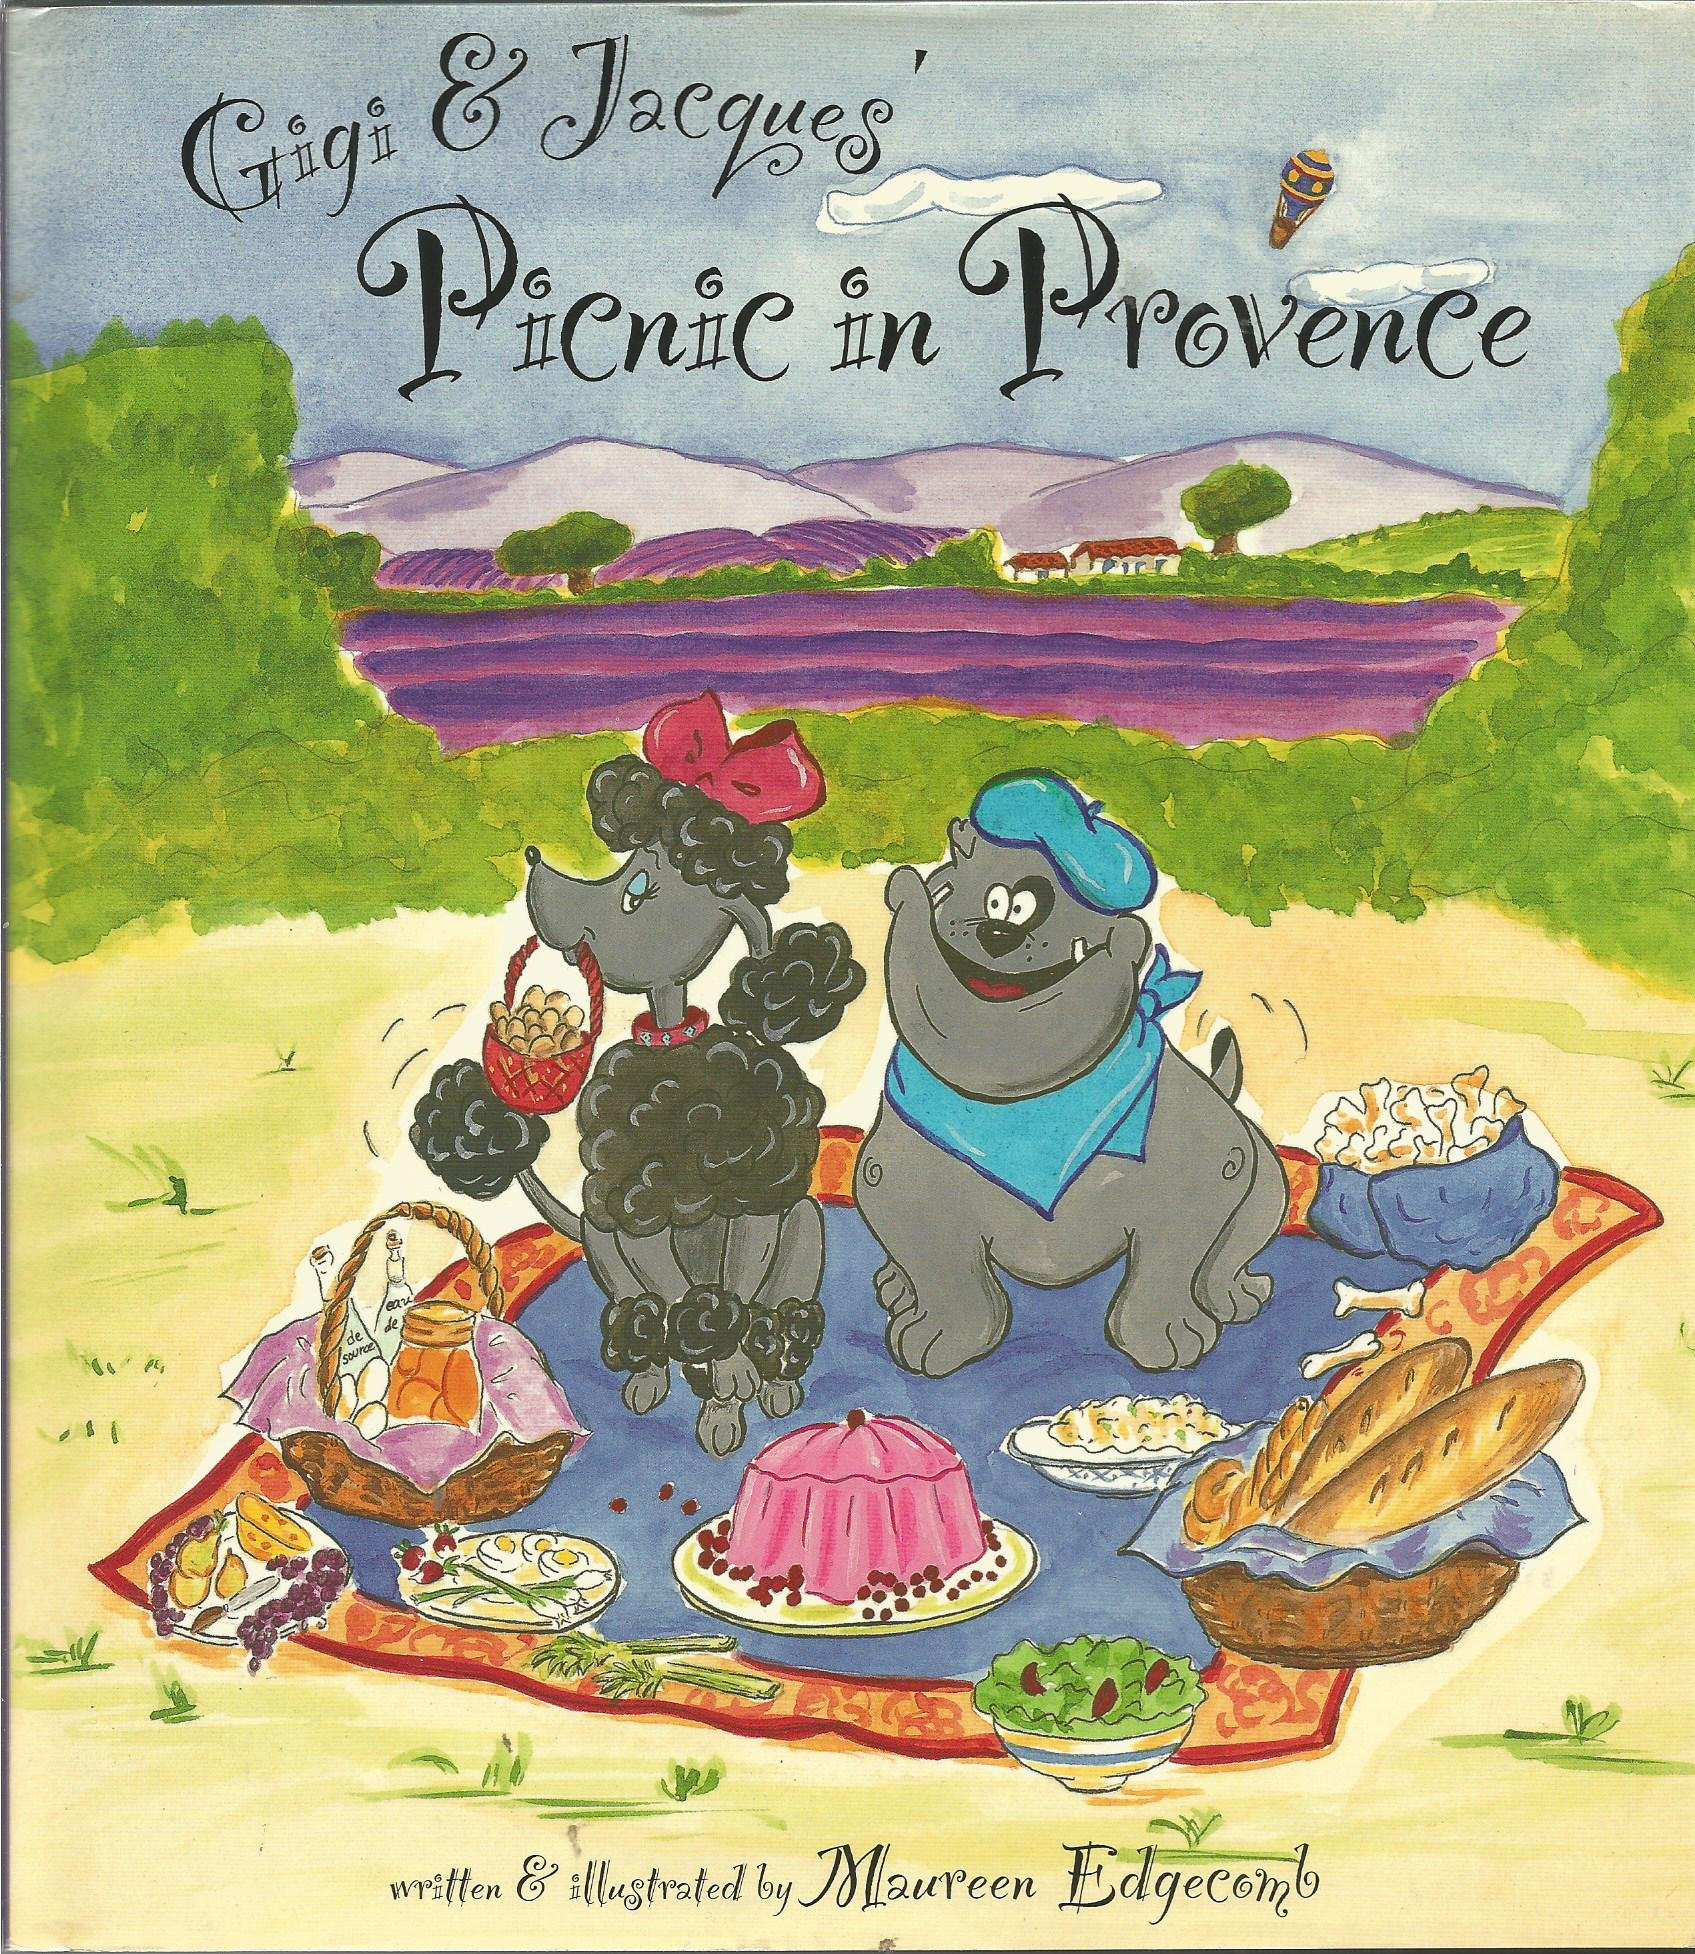 Gigi & Jacques Picnic in Provence Maureen Edge b